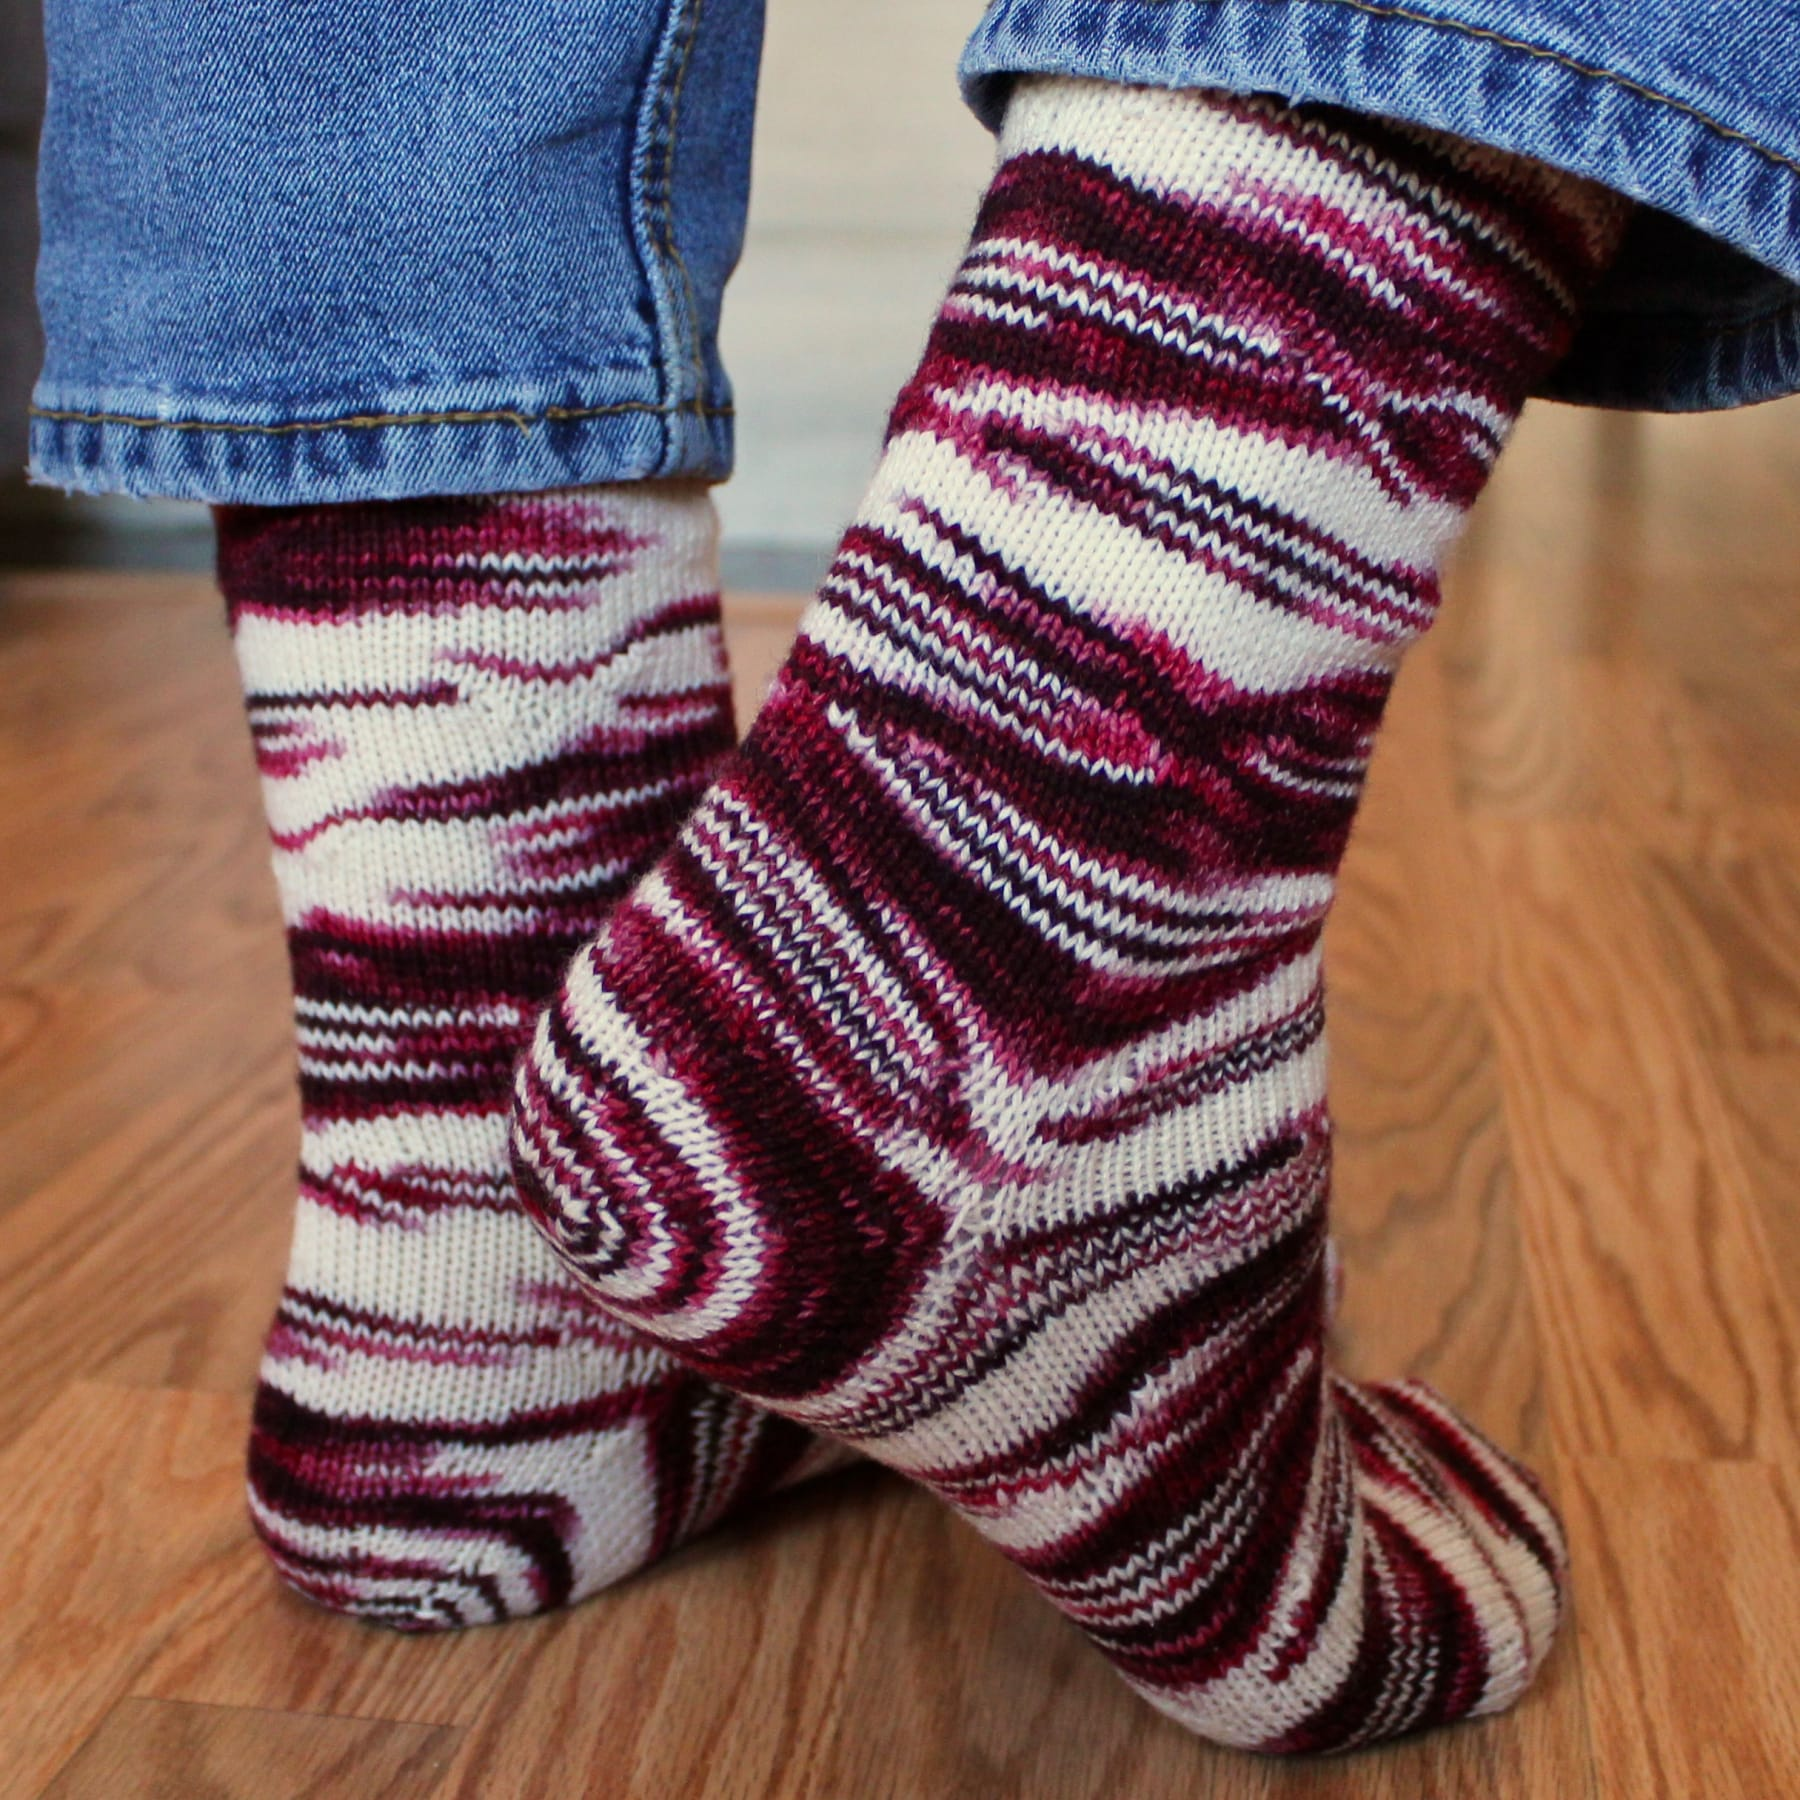 Side and back view of feet wearing red and white socks with distorted, oval-shaped pooling patterns.